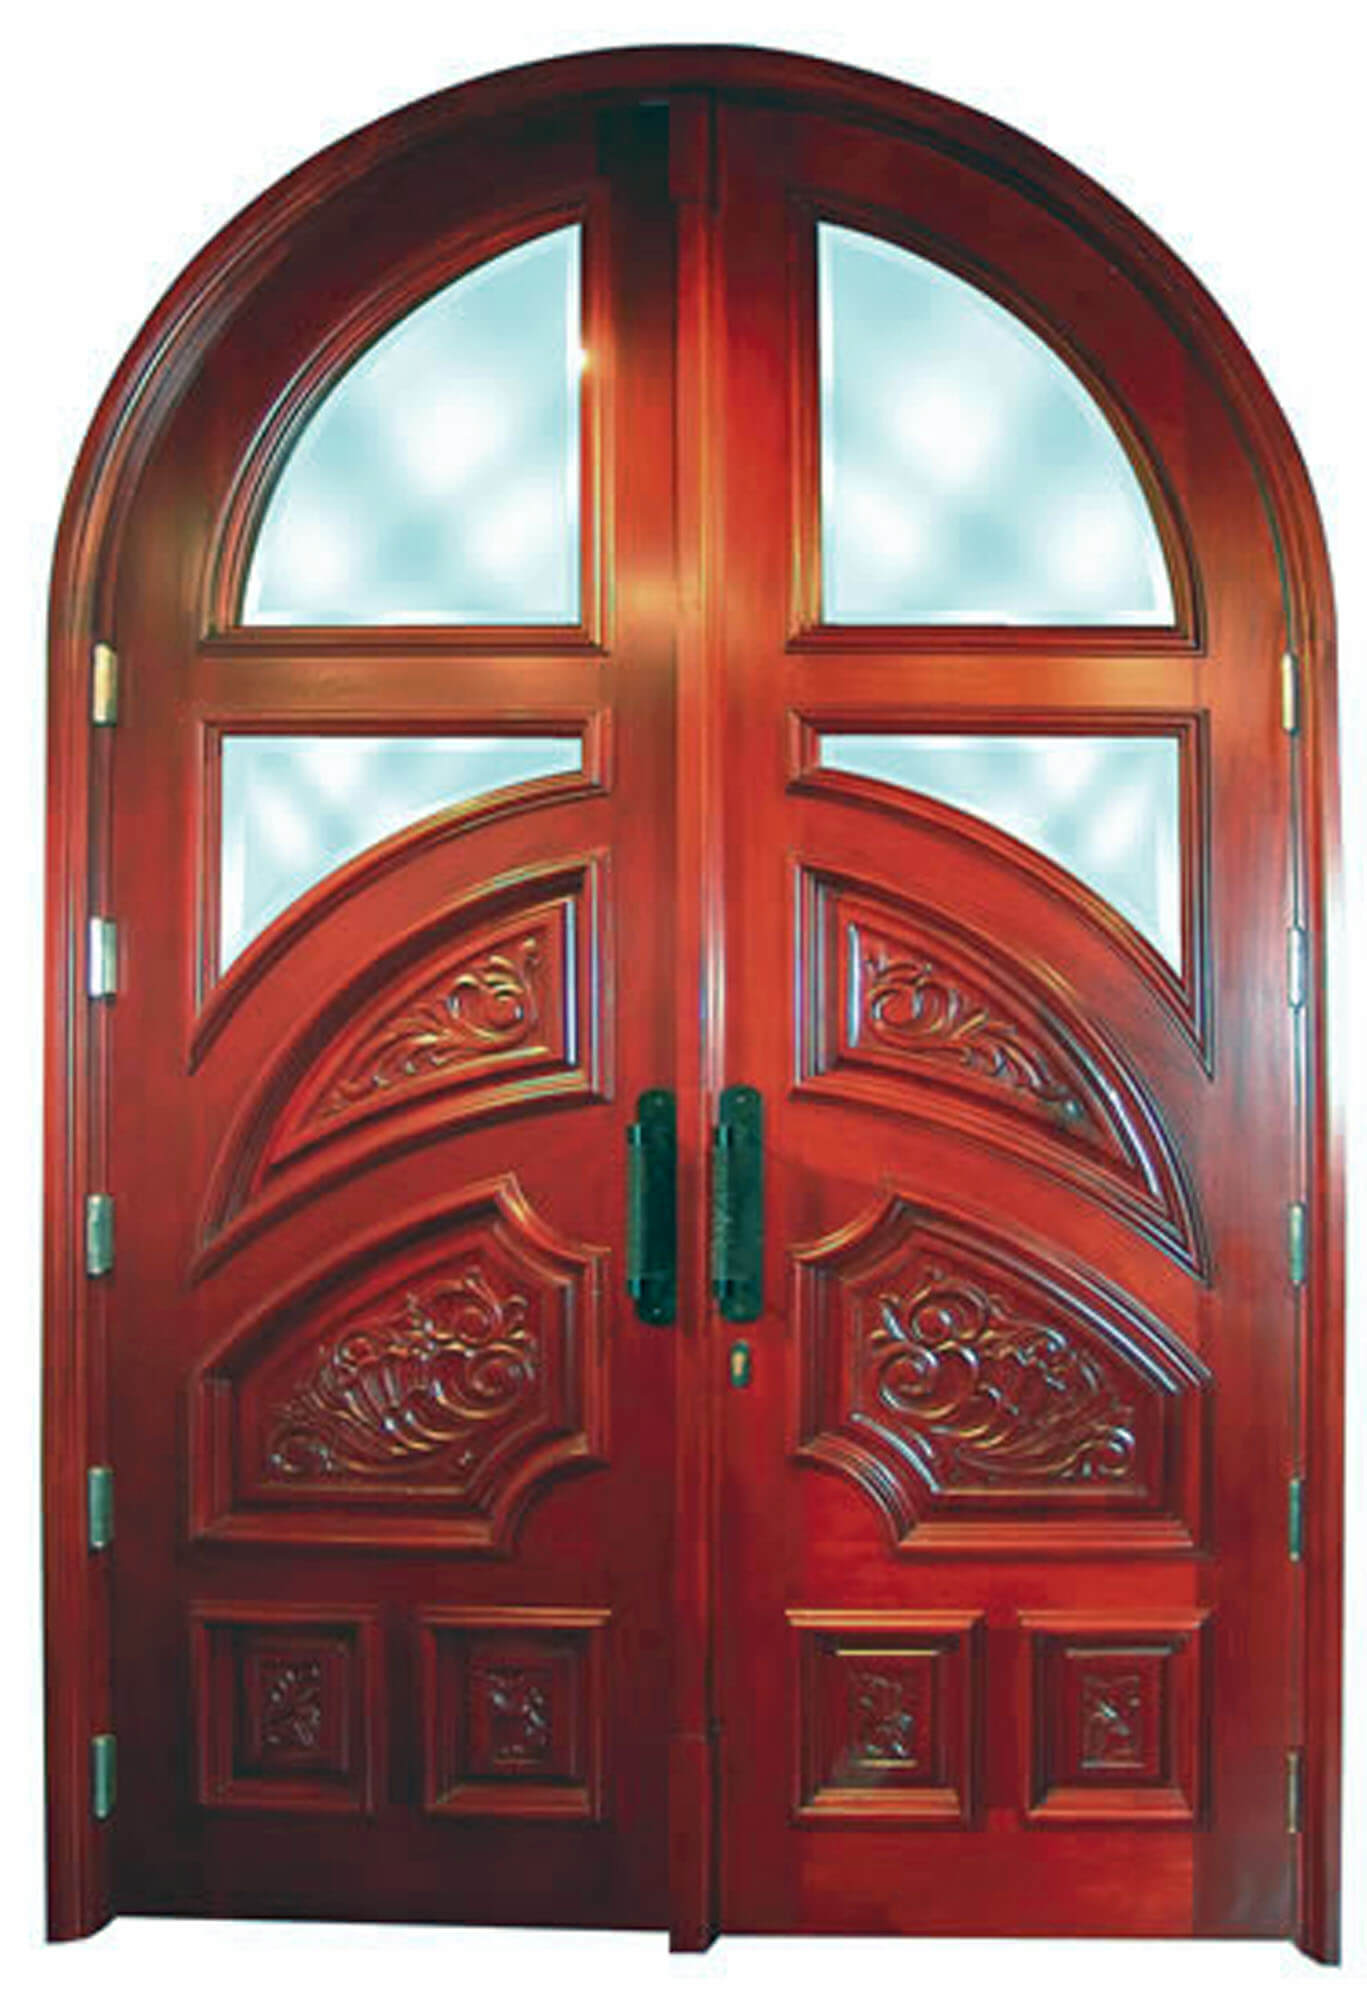 Pensacola Mahogany Entrance Doors